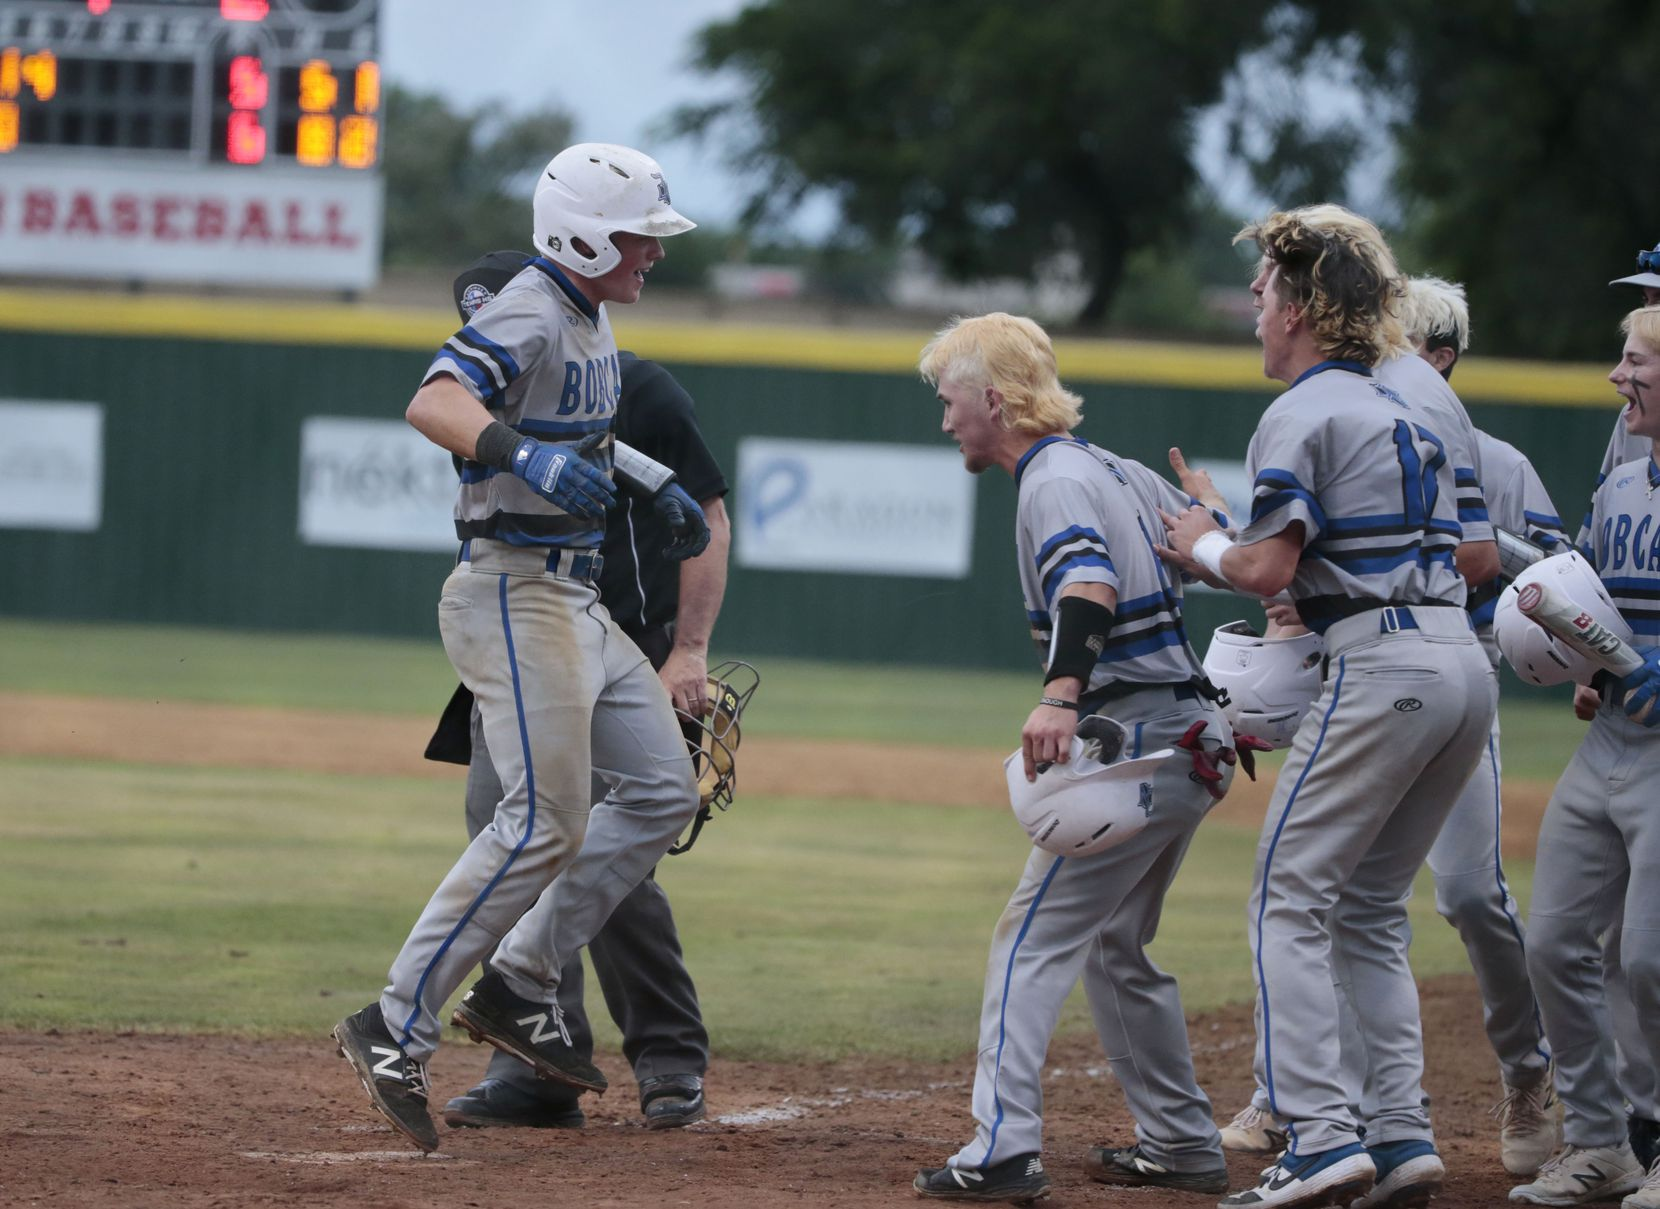 Byron Nelson's Hudson White is greeted buy teammates after his three-run home run to tie the game against Flower Mound Marcus in the 6th inning, during game 2 of the Class 6A bi-district playoff boys baseball playoffs on May 3, 2019. (Michael Ainsworth/Special Contributor)